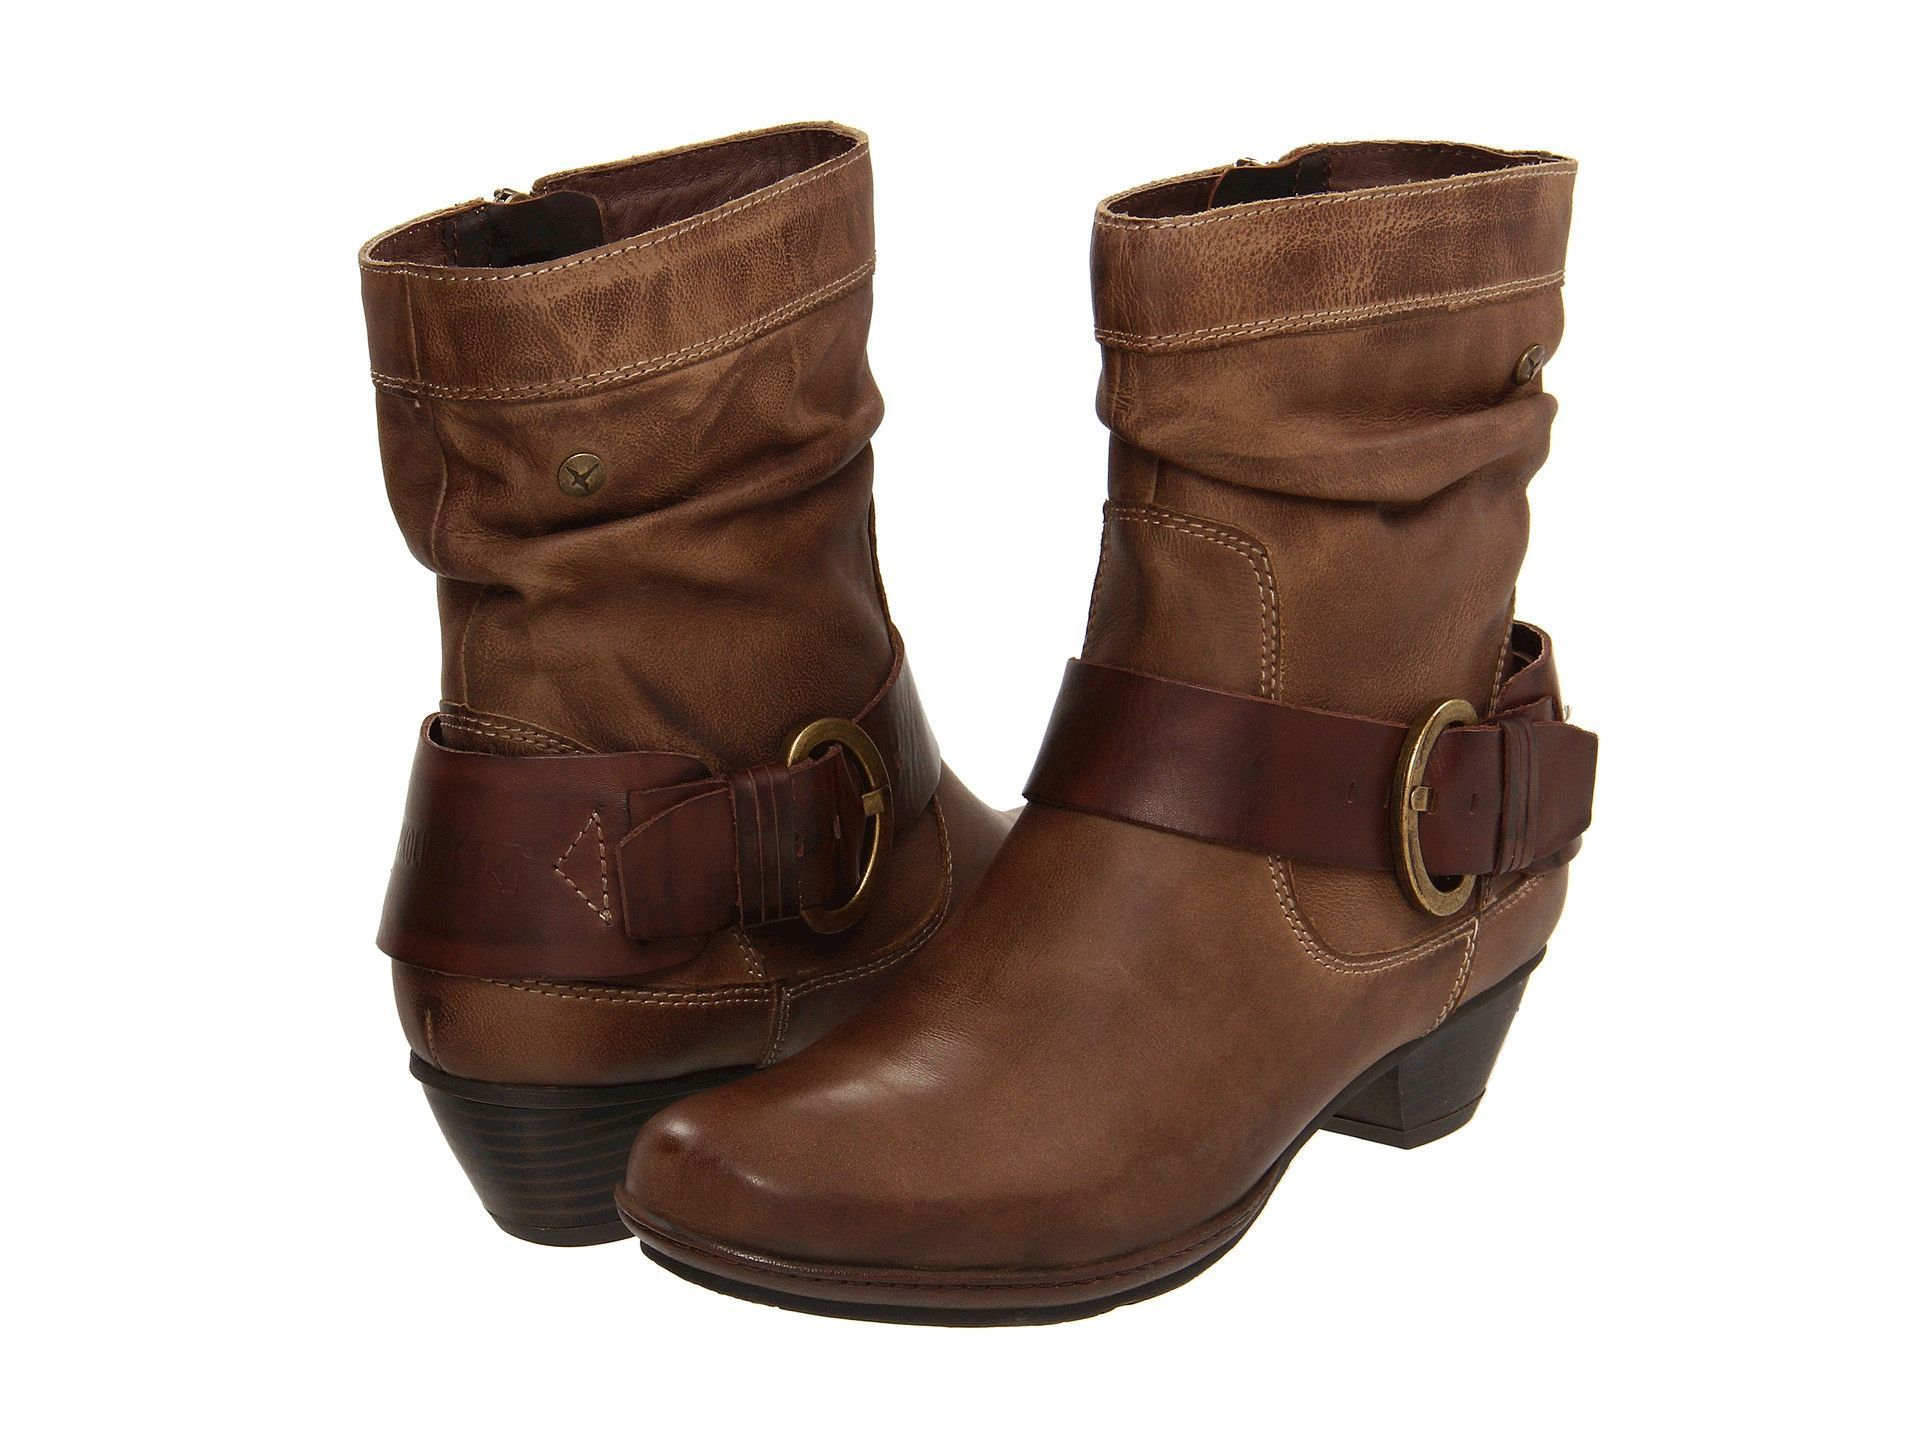 Pikolinos 801-8003 Brown Leather Slouch Brujas Mid Calf Boots Size 4